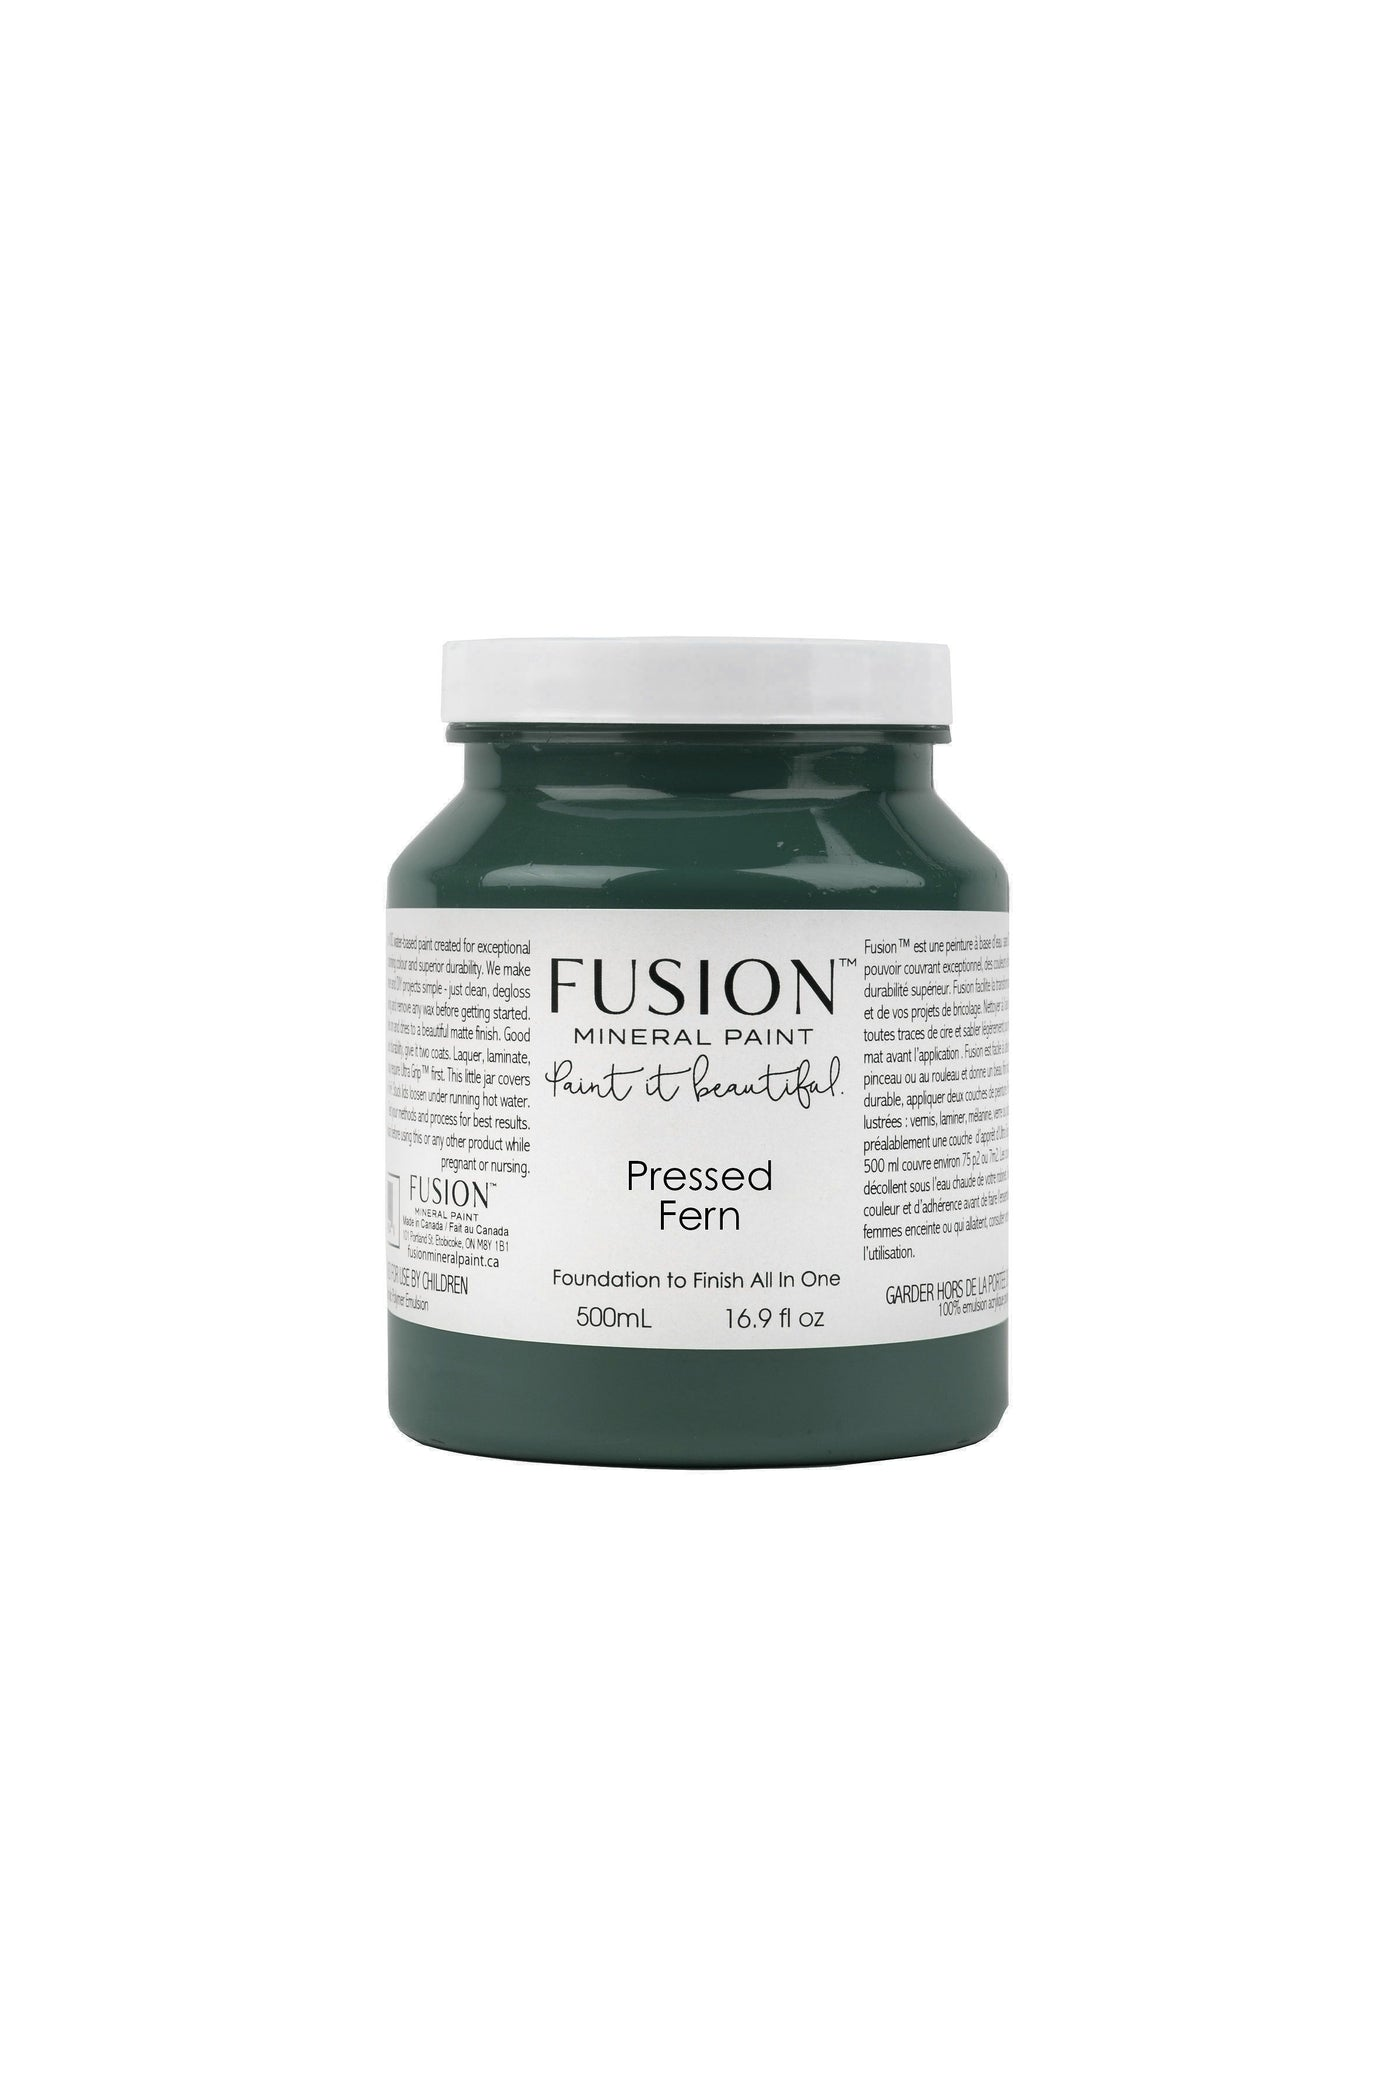 Fusion Mineral Paint - PRESSED FERN Pint